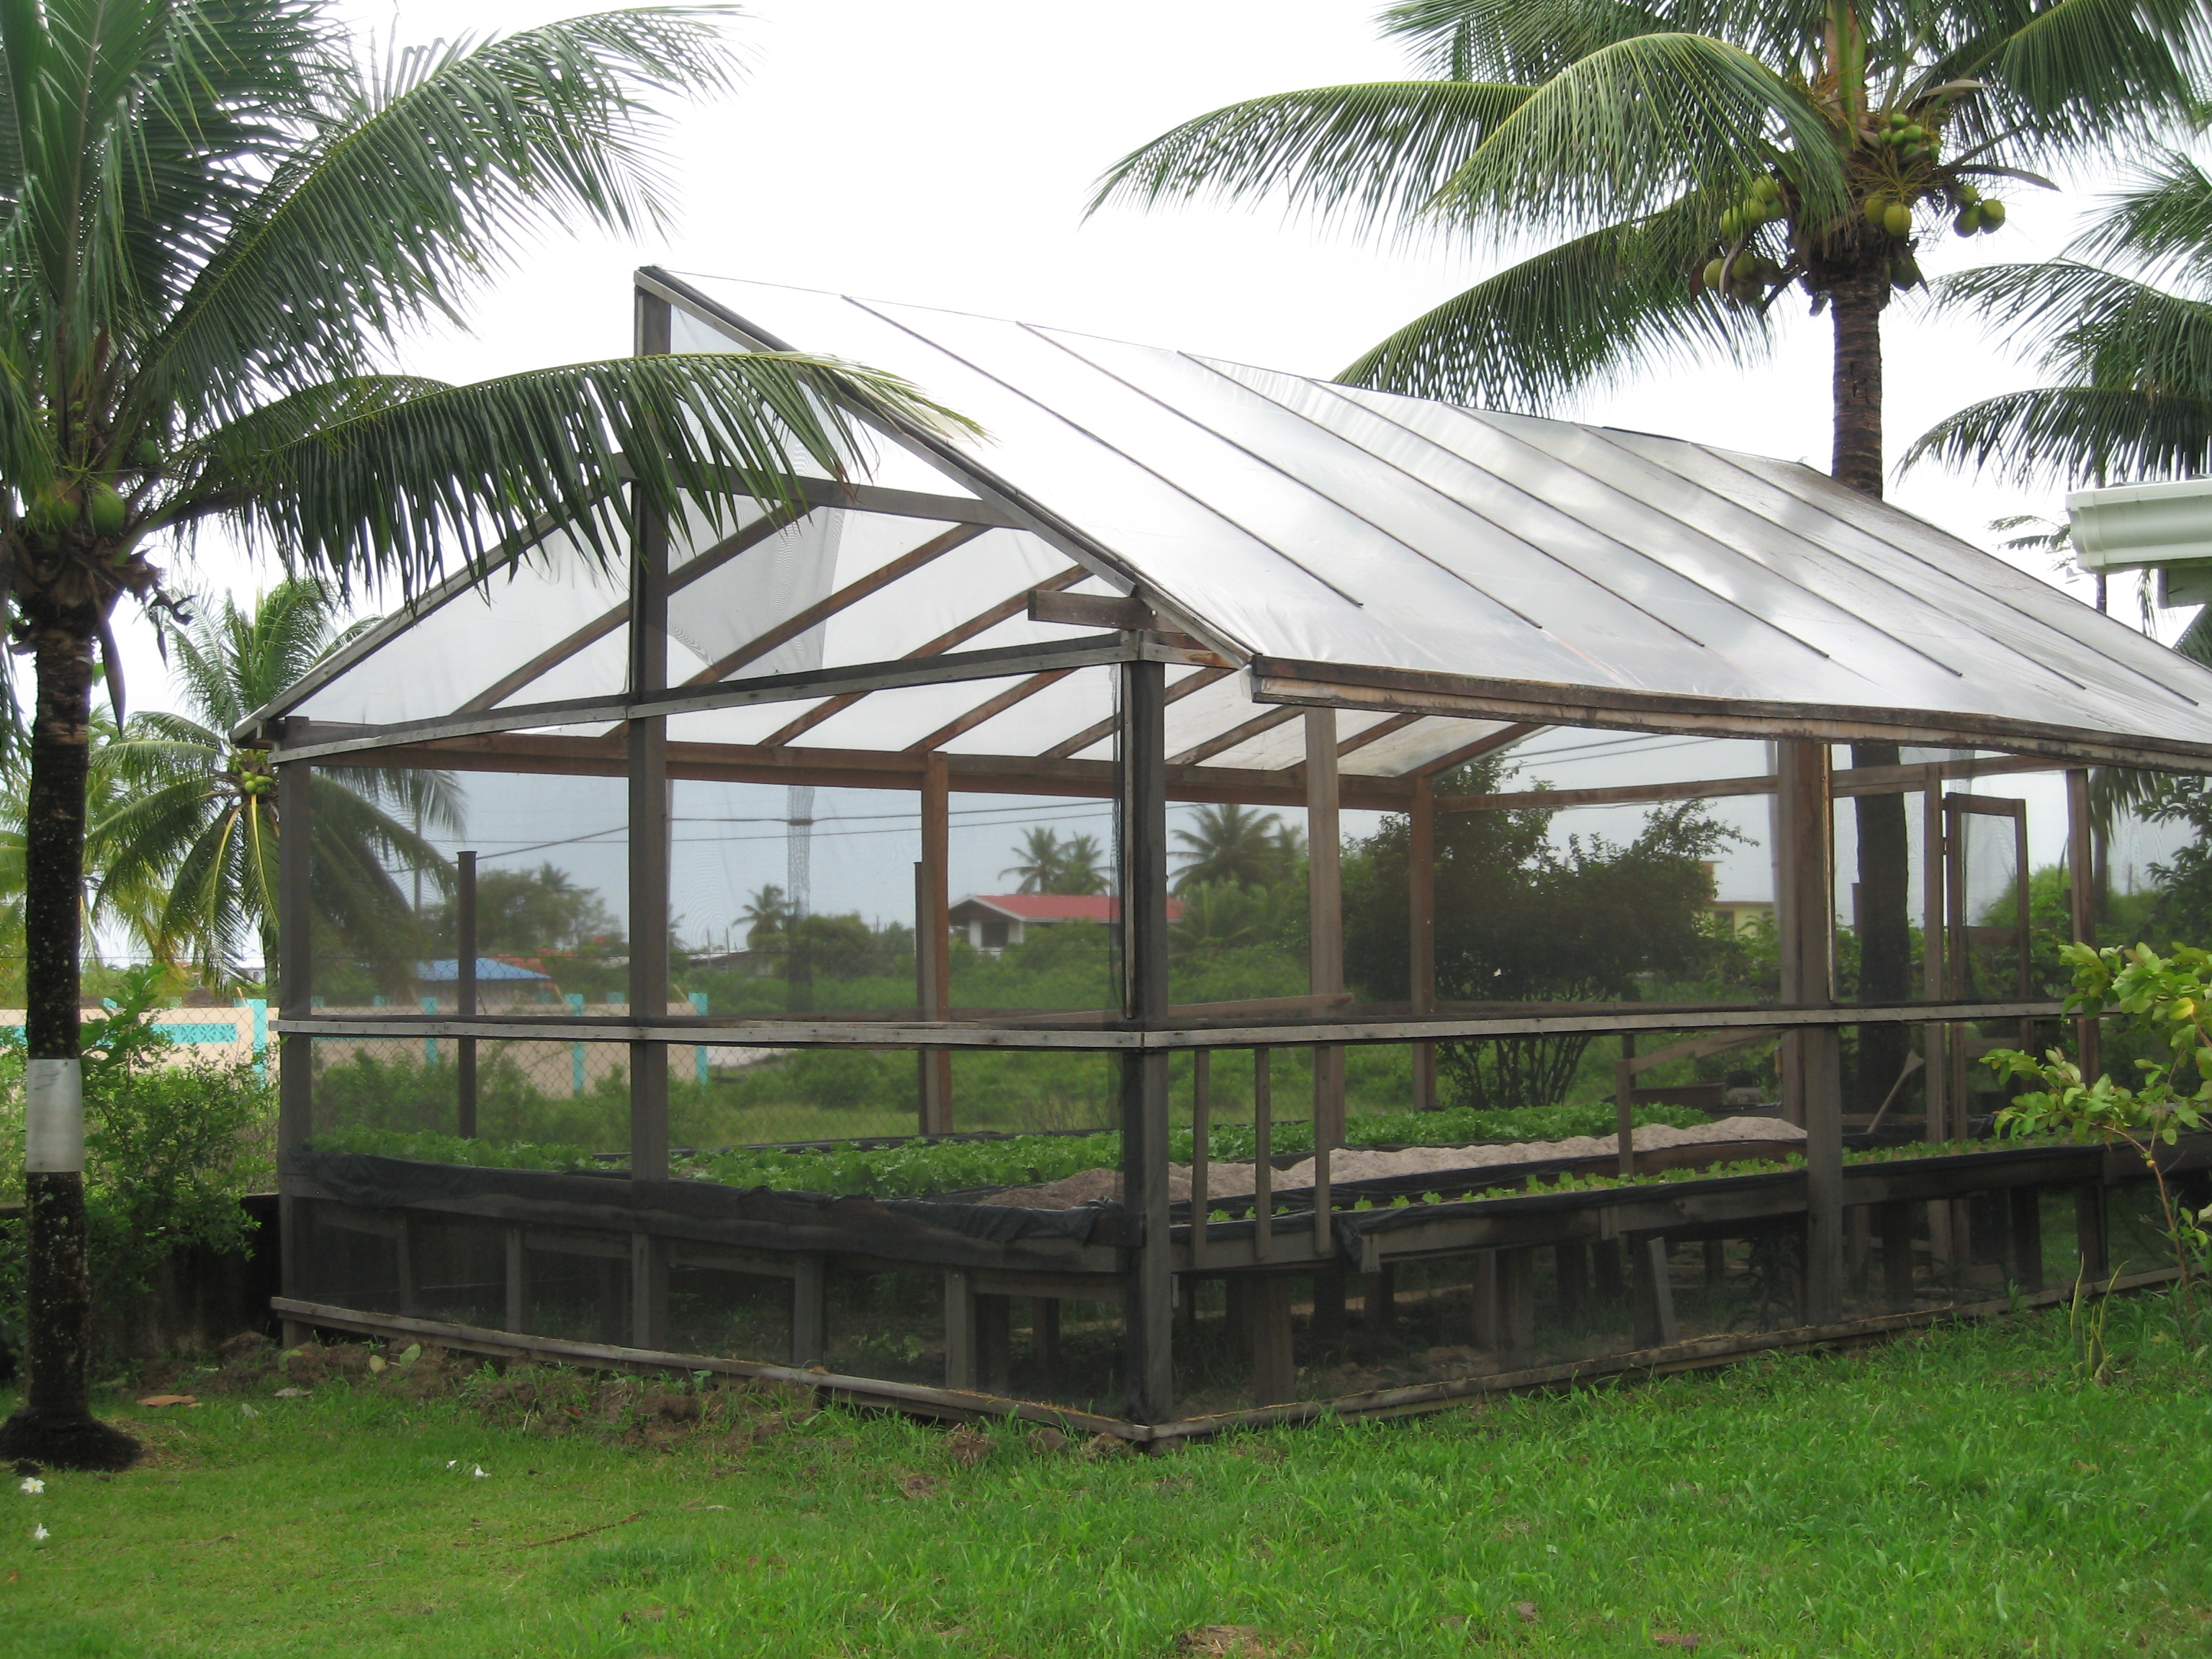 Shadehouse Design used in Hydroponic Vegetables Pilot Project